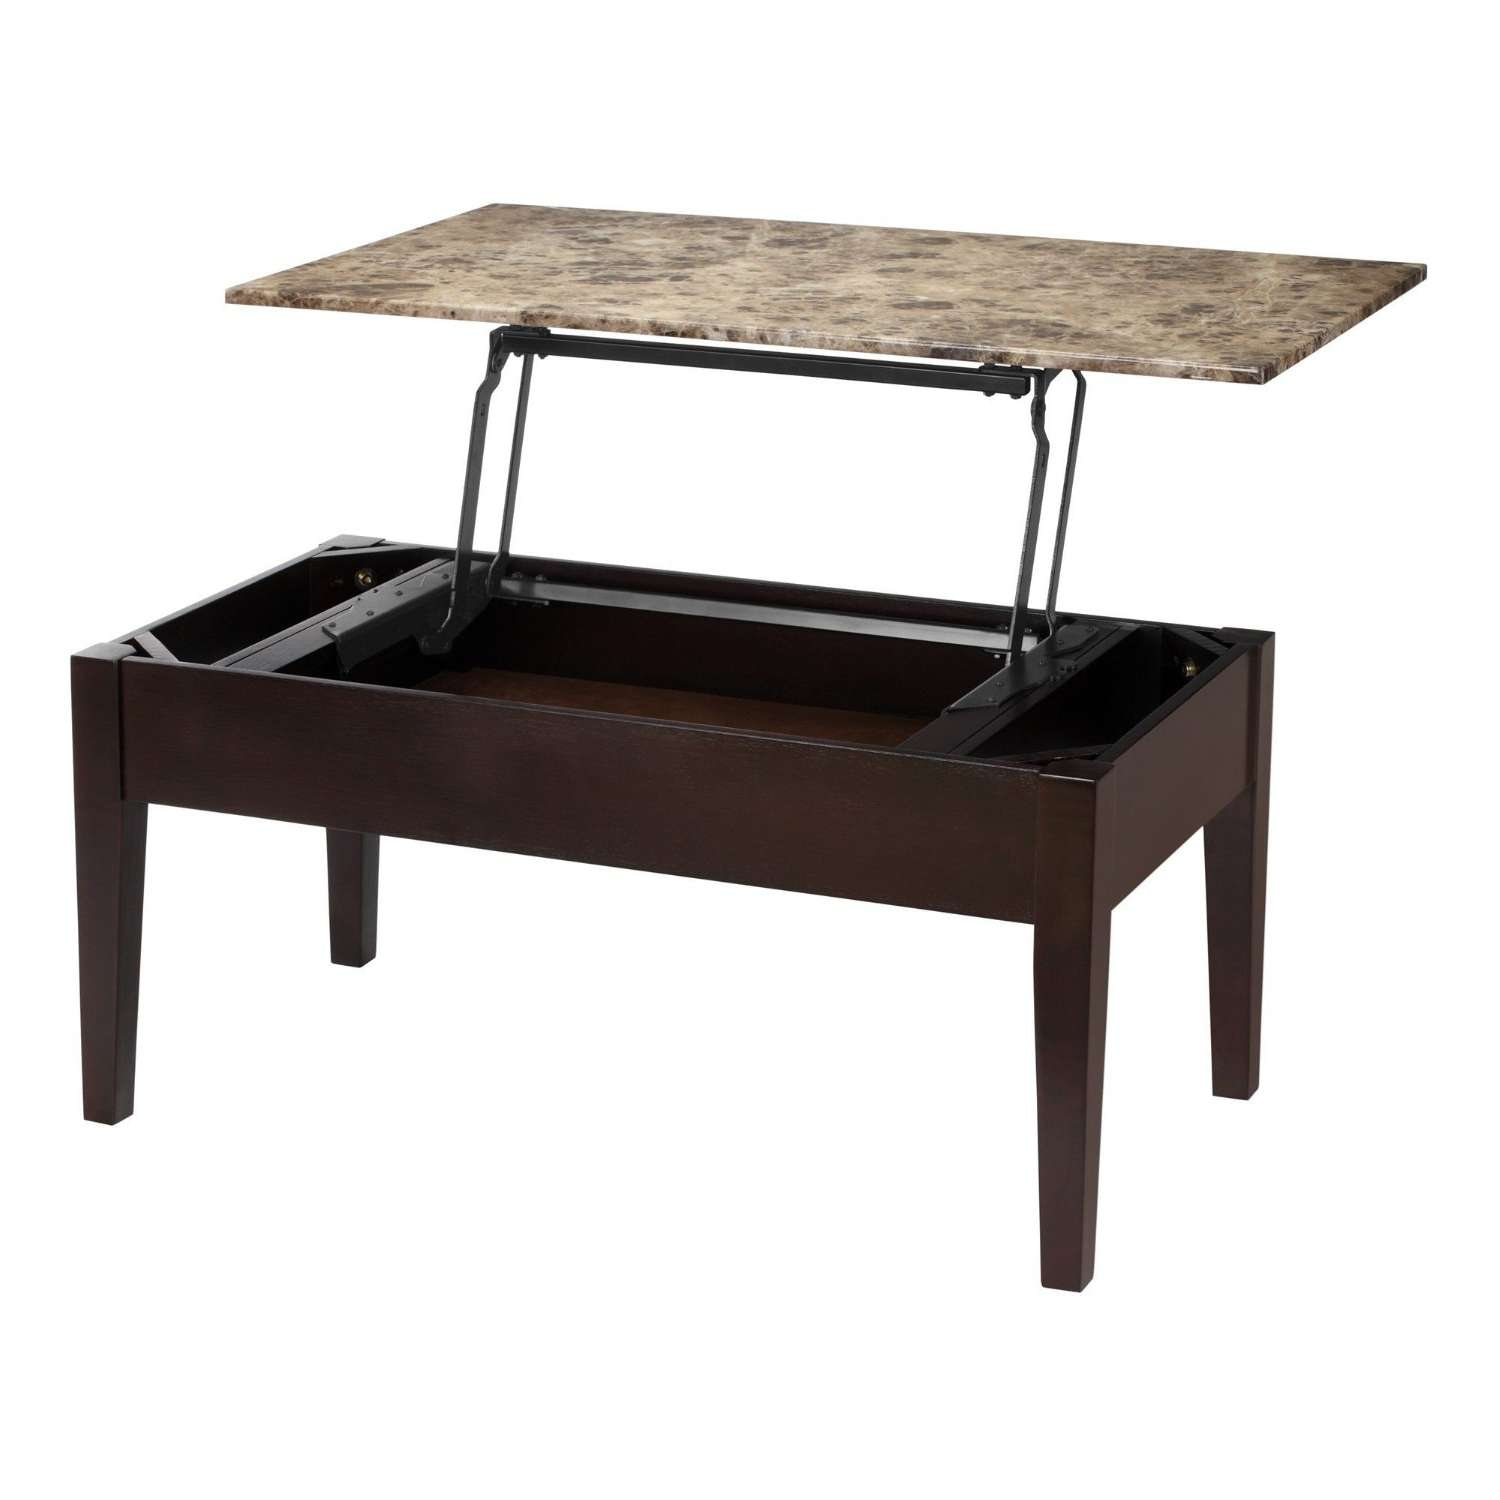 Well Known Cheap Coffee Tables With Storage With Cheap Coffee Tables Under $100 That Work For Every Style (View 20 of 20)